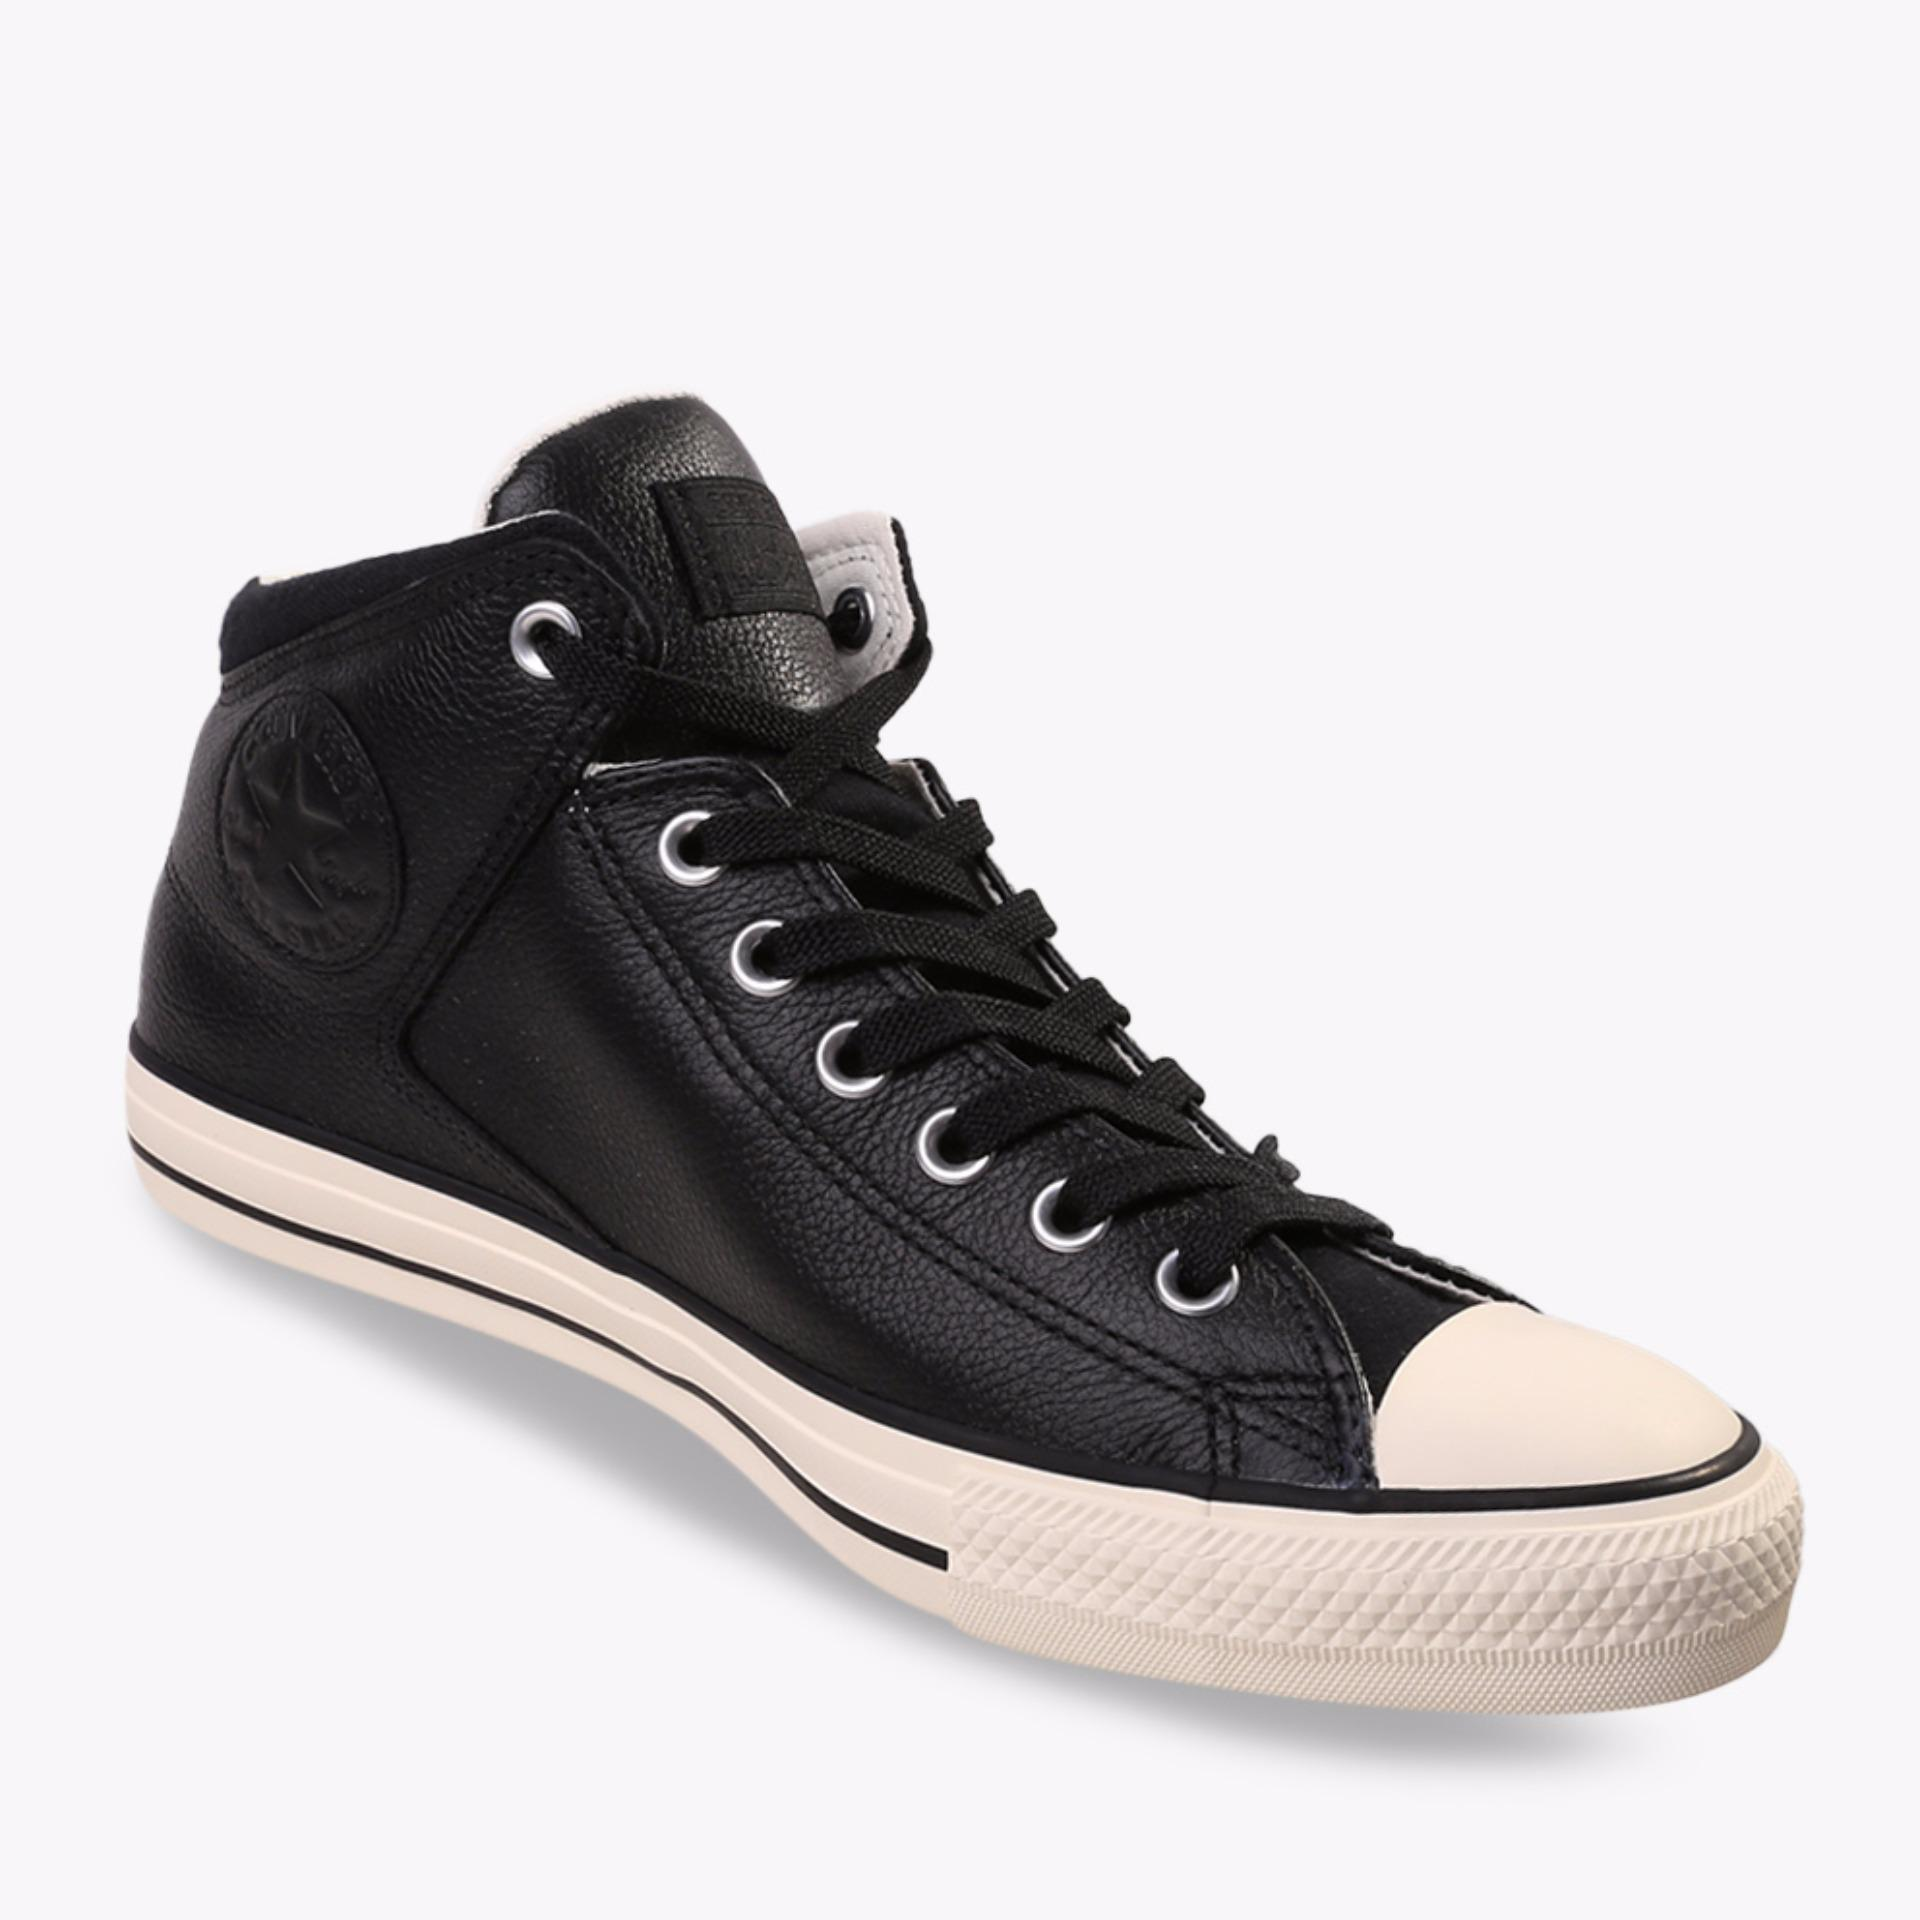 Ulasan Mengenai Converse Chuck Taylor All Star High Stret Men S Sneakers Shoes Hitam